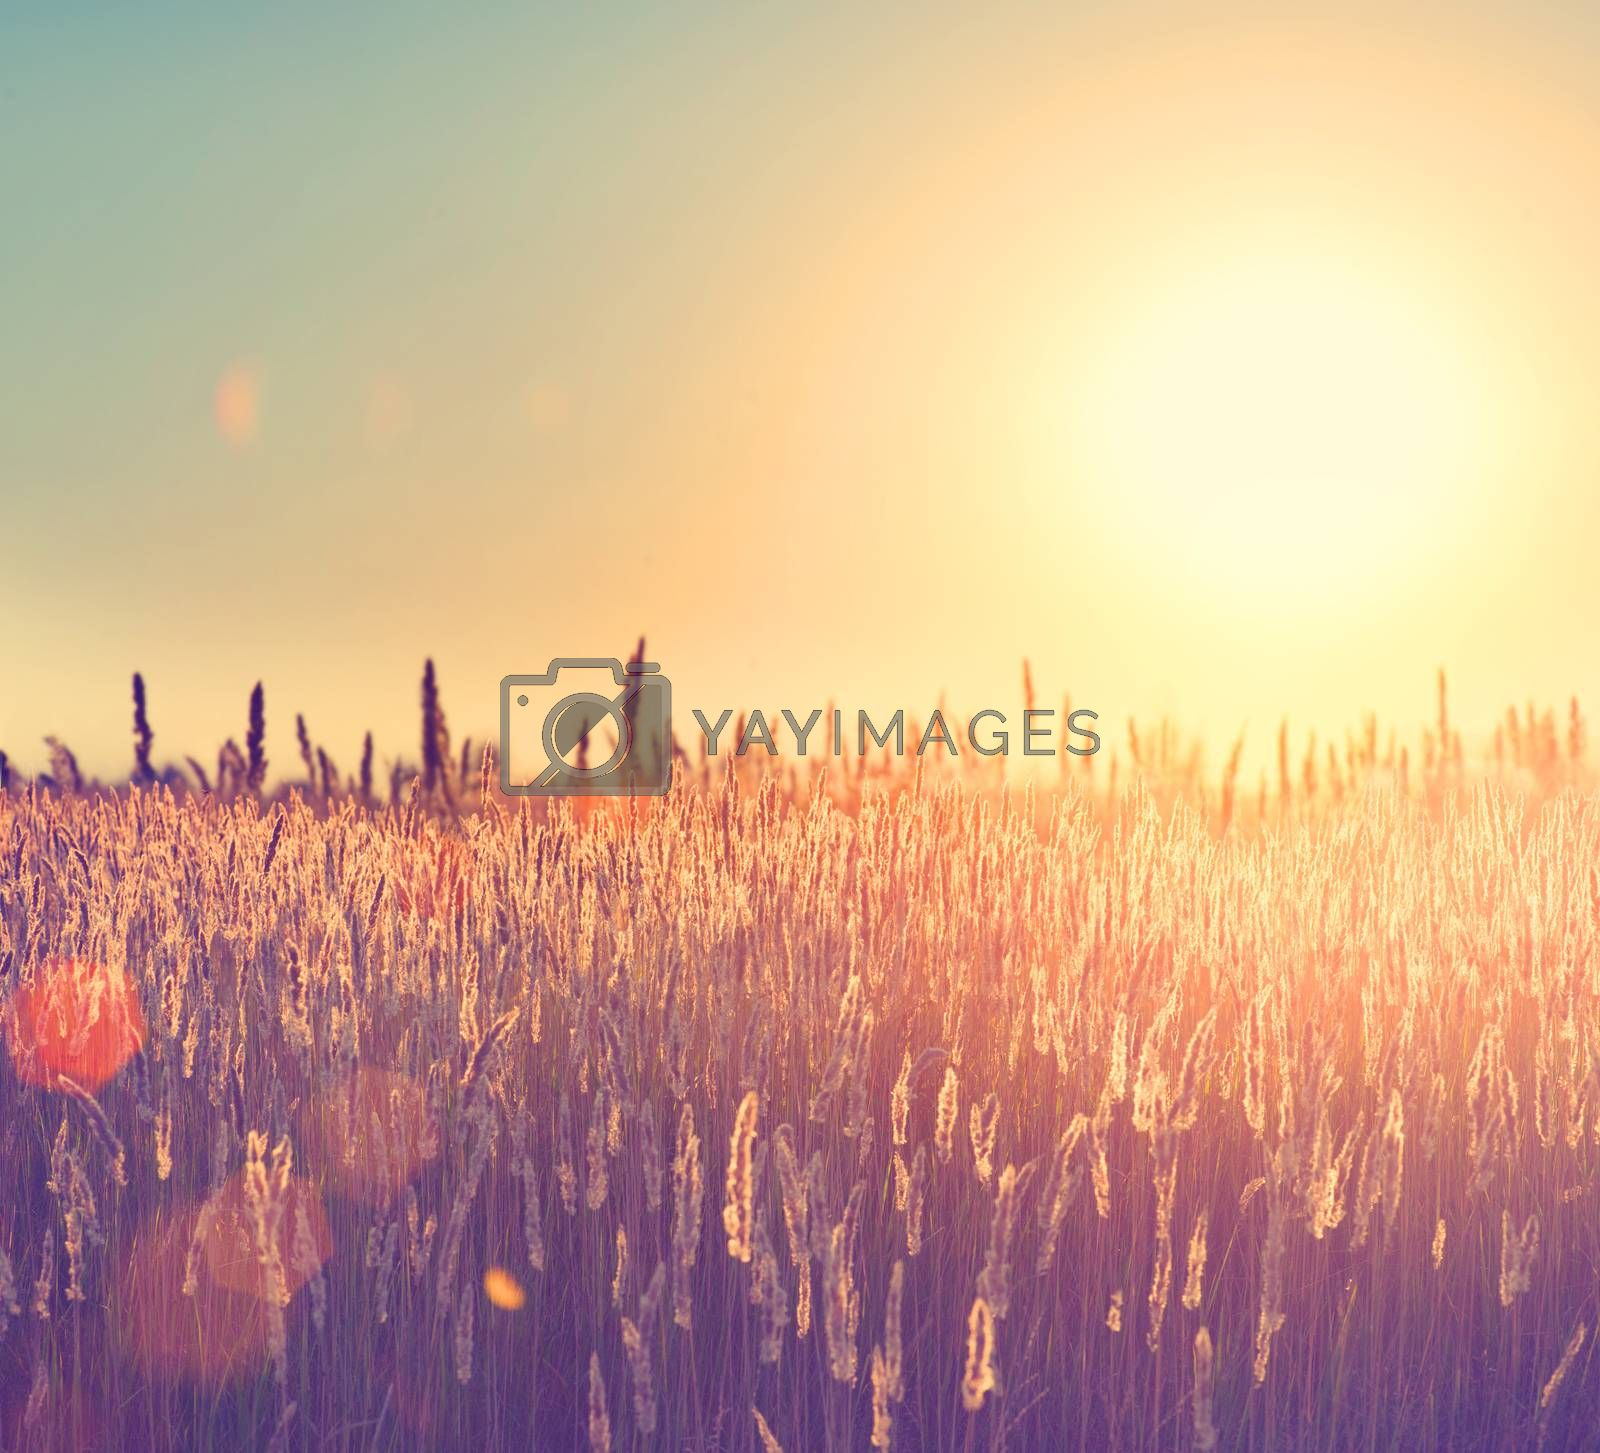 Field. Rural Landscape under Shining Sunlight